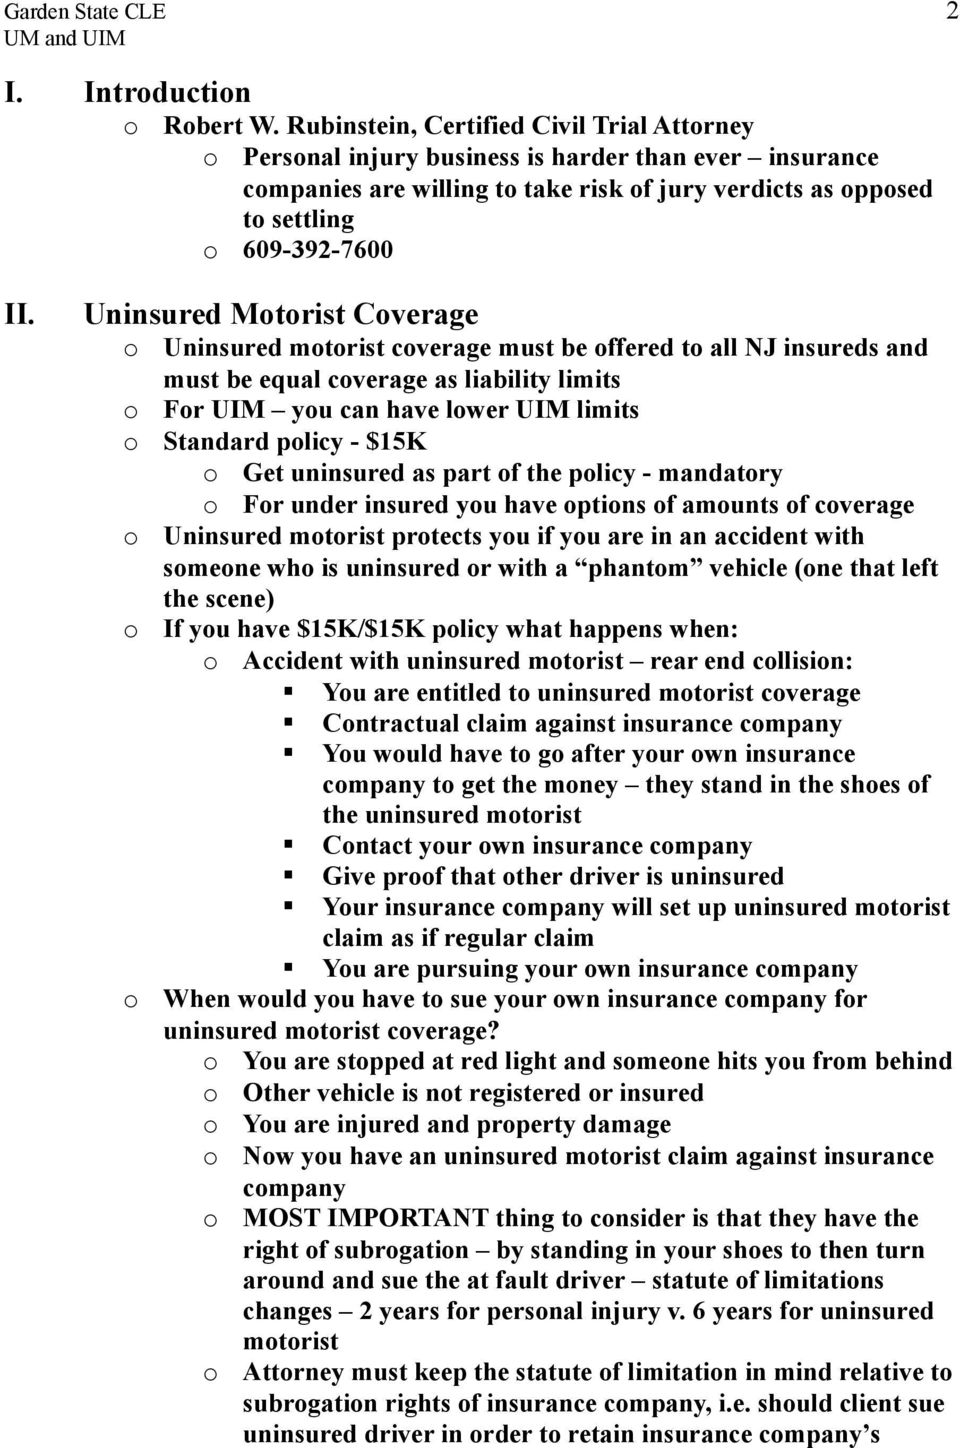 Uninsured Mtrist Cverage Uninsured mtrist cverage must be ffered t all NJ insureds and must be equal cverage as liability limits Fr UIM yu can have lwer UIM limits Standard plicy - $15K Get uninsured